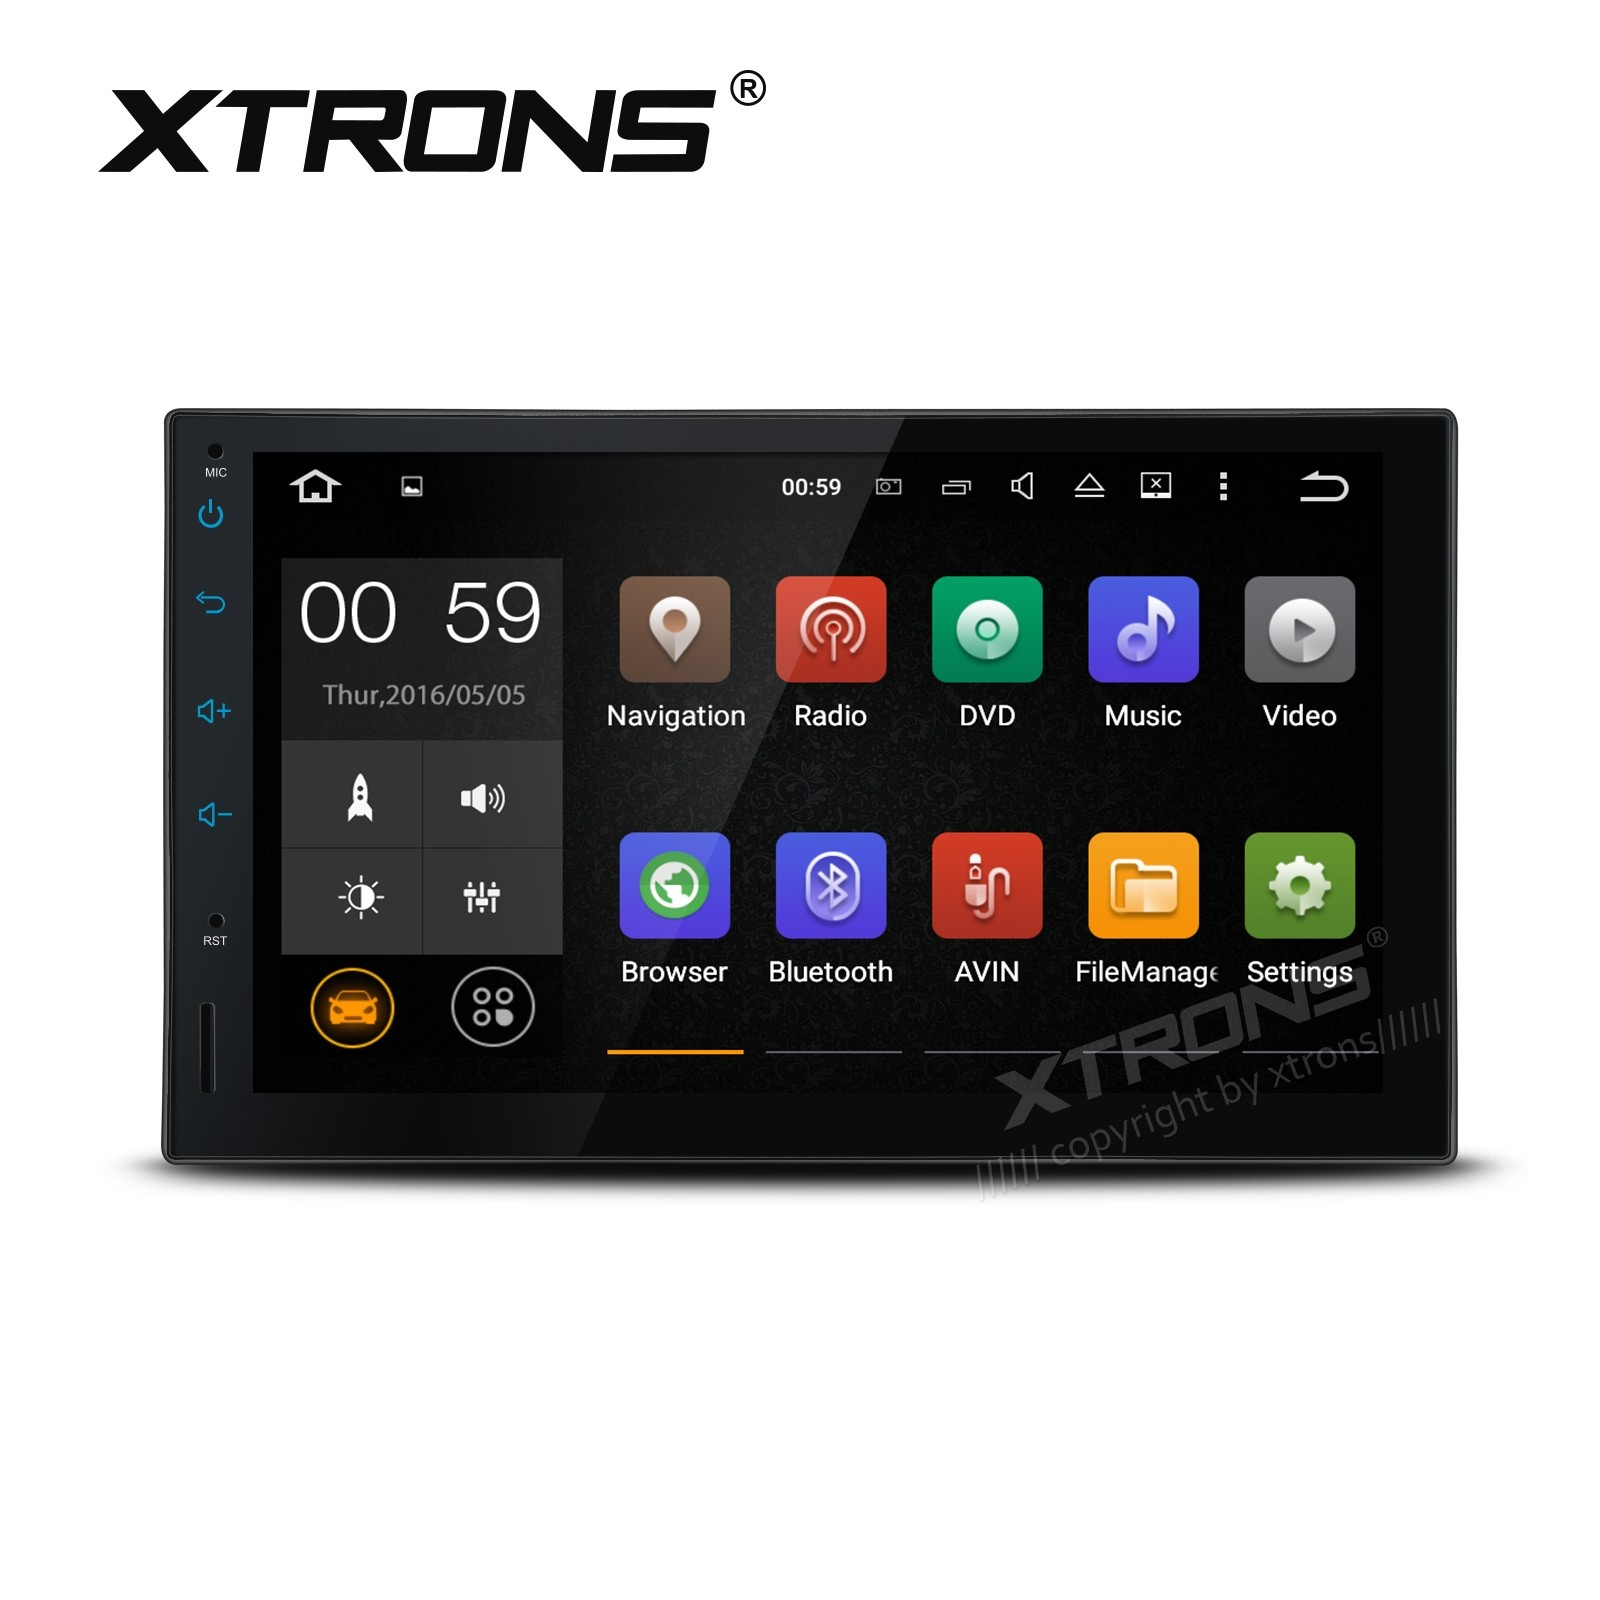 """7"""" Android 6.0 Marshmallow Quad Core 64Bit  Operating System 64Bit CPU Processor Car Stereo with Screen Mirroring & OBD2"""